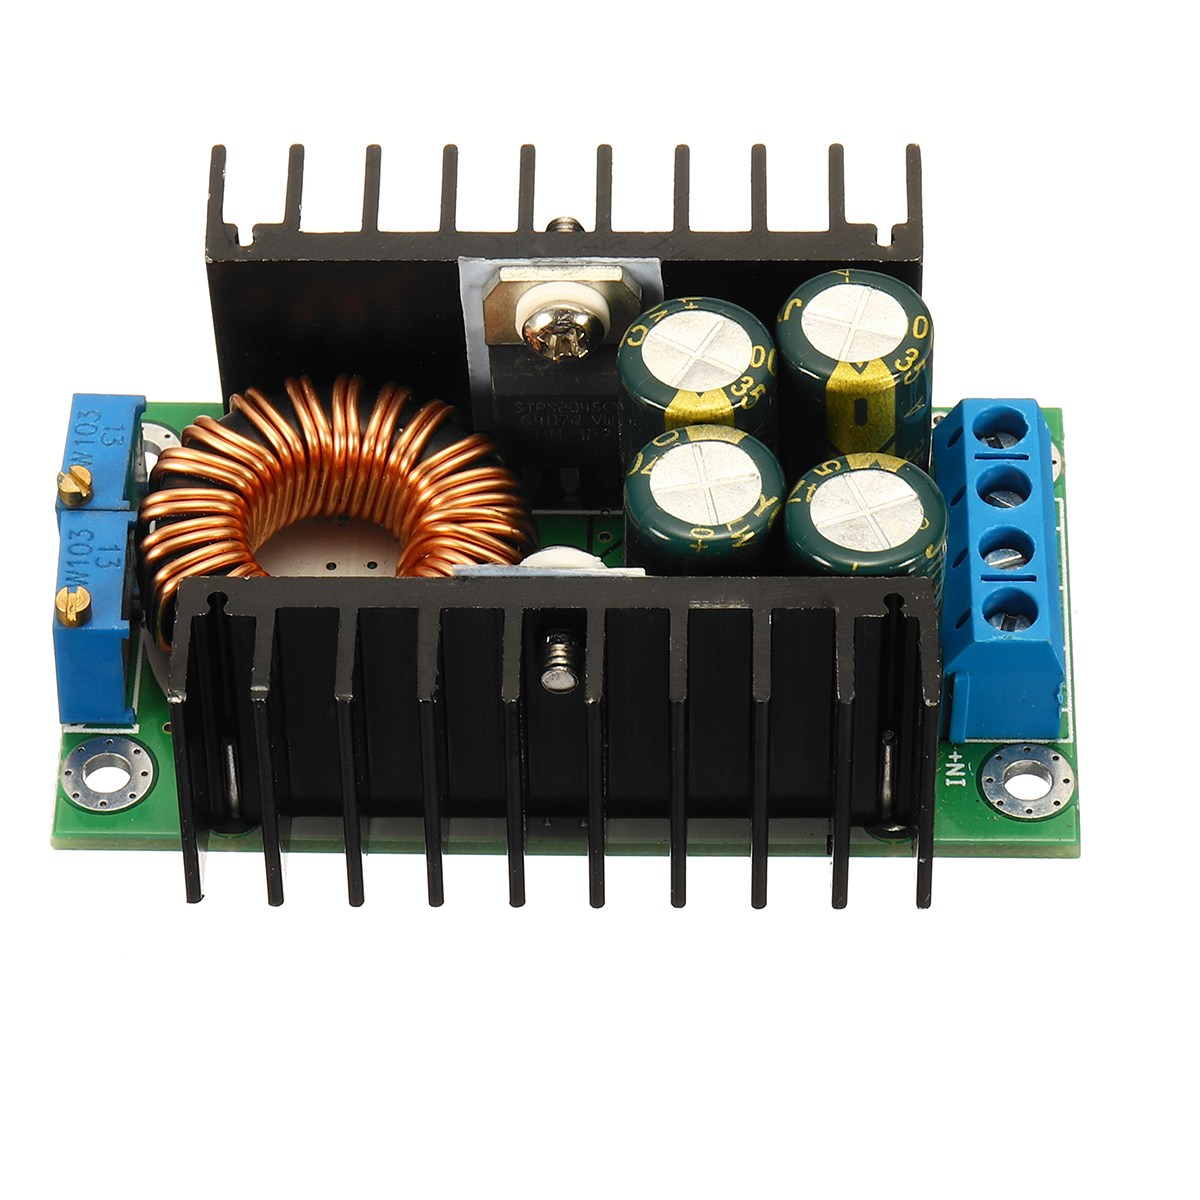 1PC New DC-DC CC CV Buck Converter Step-down Power Module 7-32V to 0.8-28V 12A 300W Board Electronic Components & Supplies